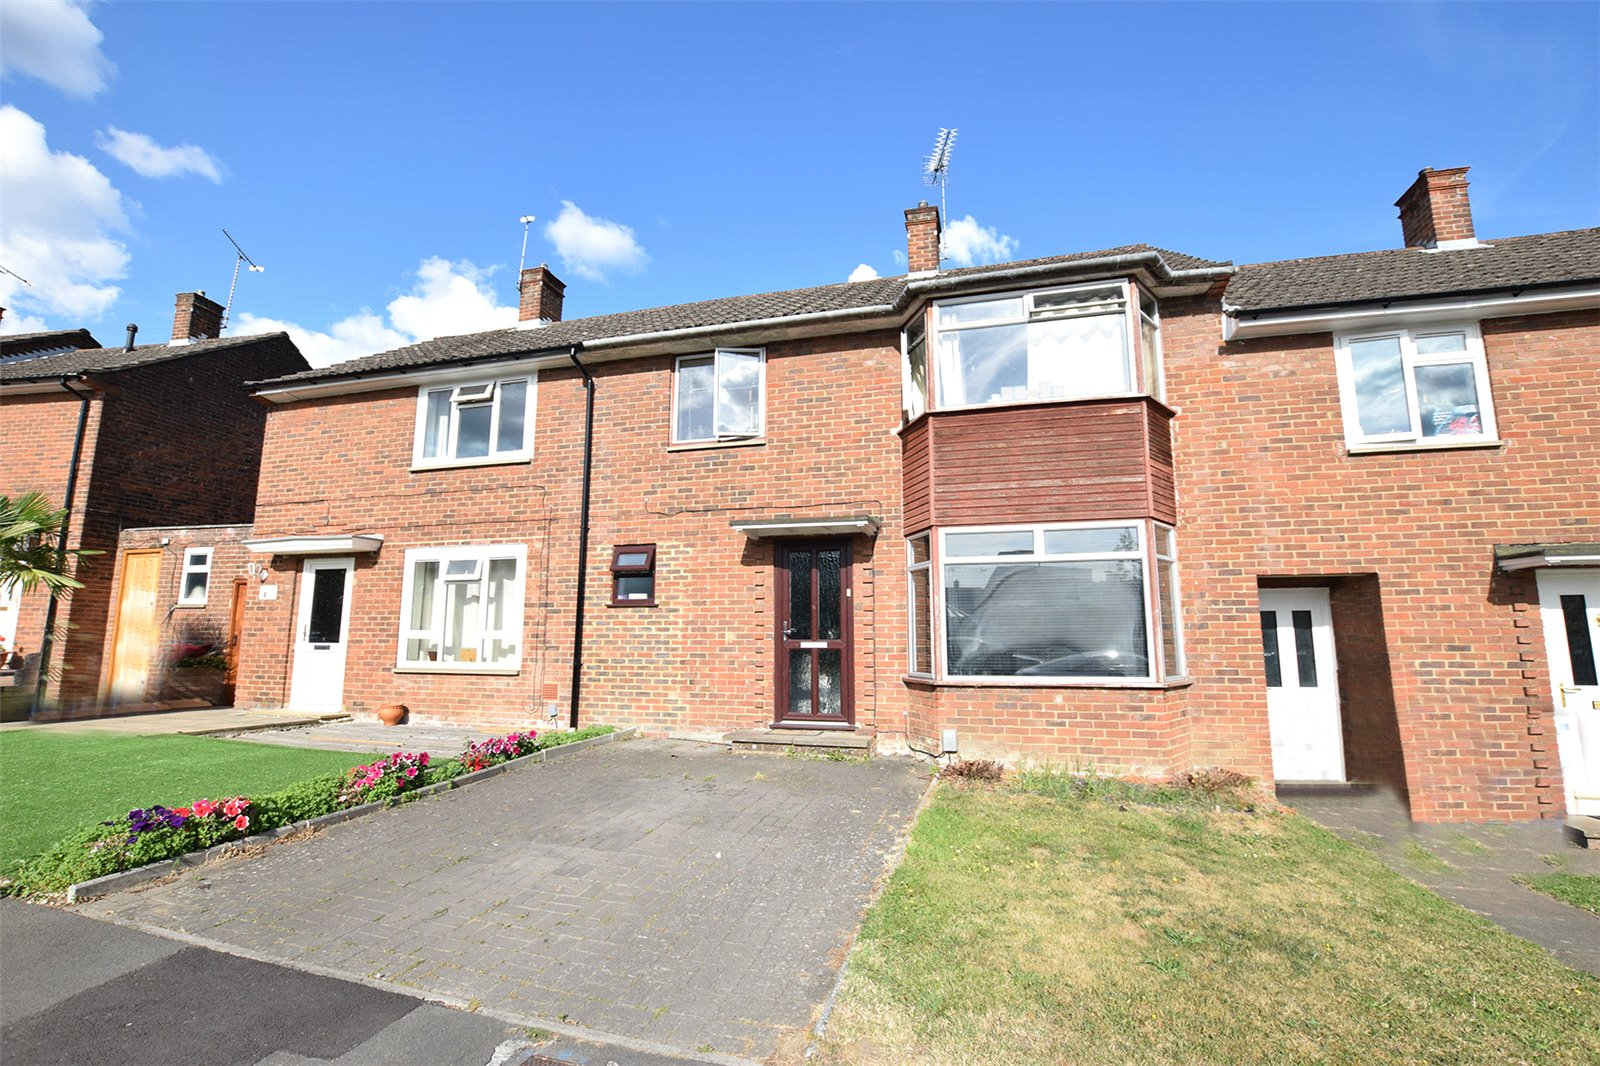 3 Bedrooms Terraced House for sale in Haversham Drive, Bracknell, Berkshire, RG12